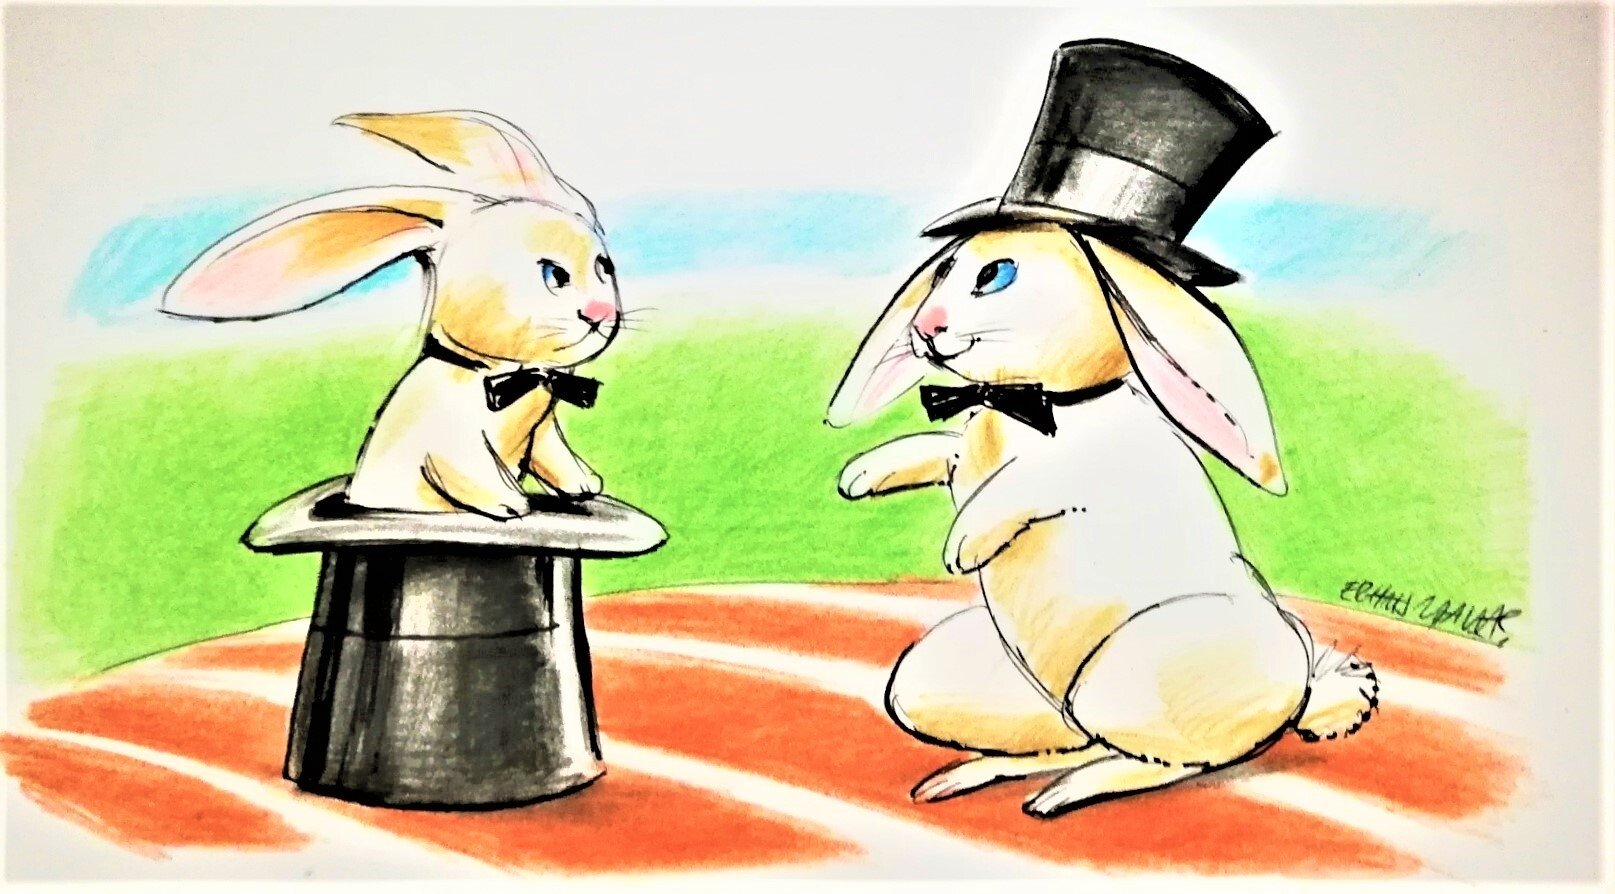 Opposition's 2023 contenders: Rabbits or the real thing?